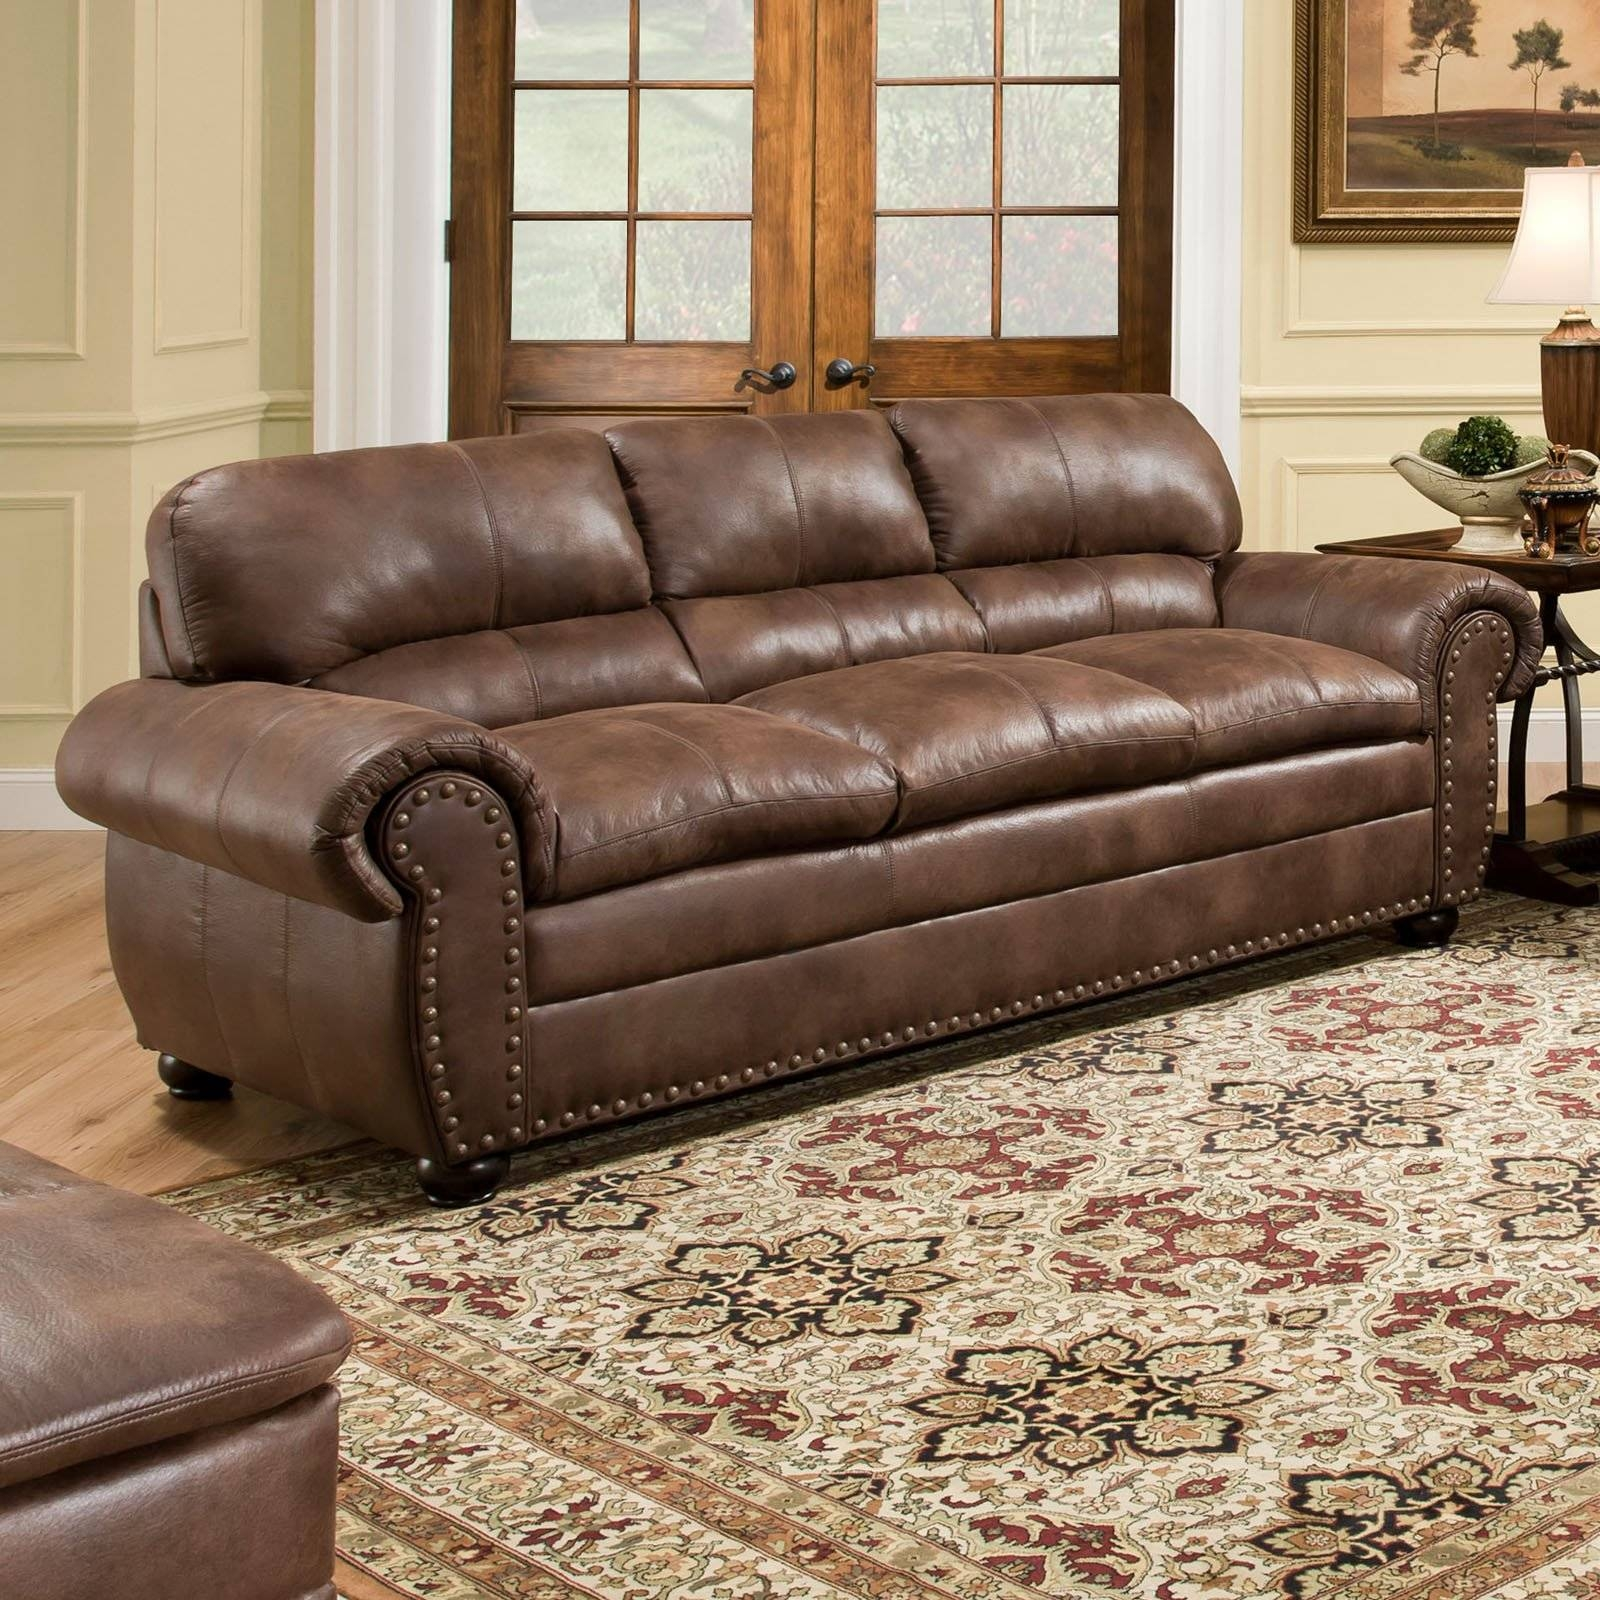 Simmons Upholstery Padre Sofa - Espresso | Hayneedle with regard to Simmons Sofas (Image 13 of 15)